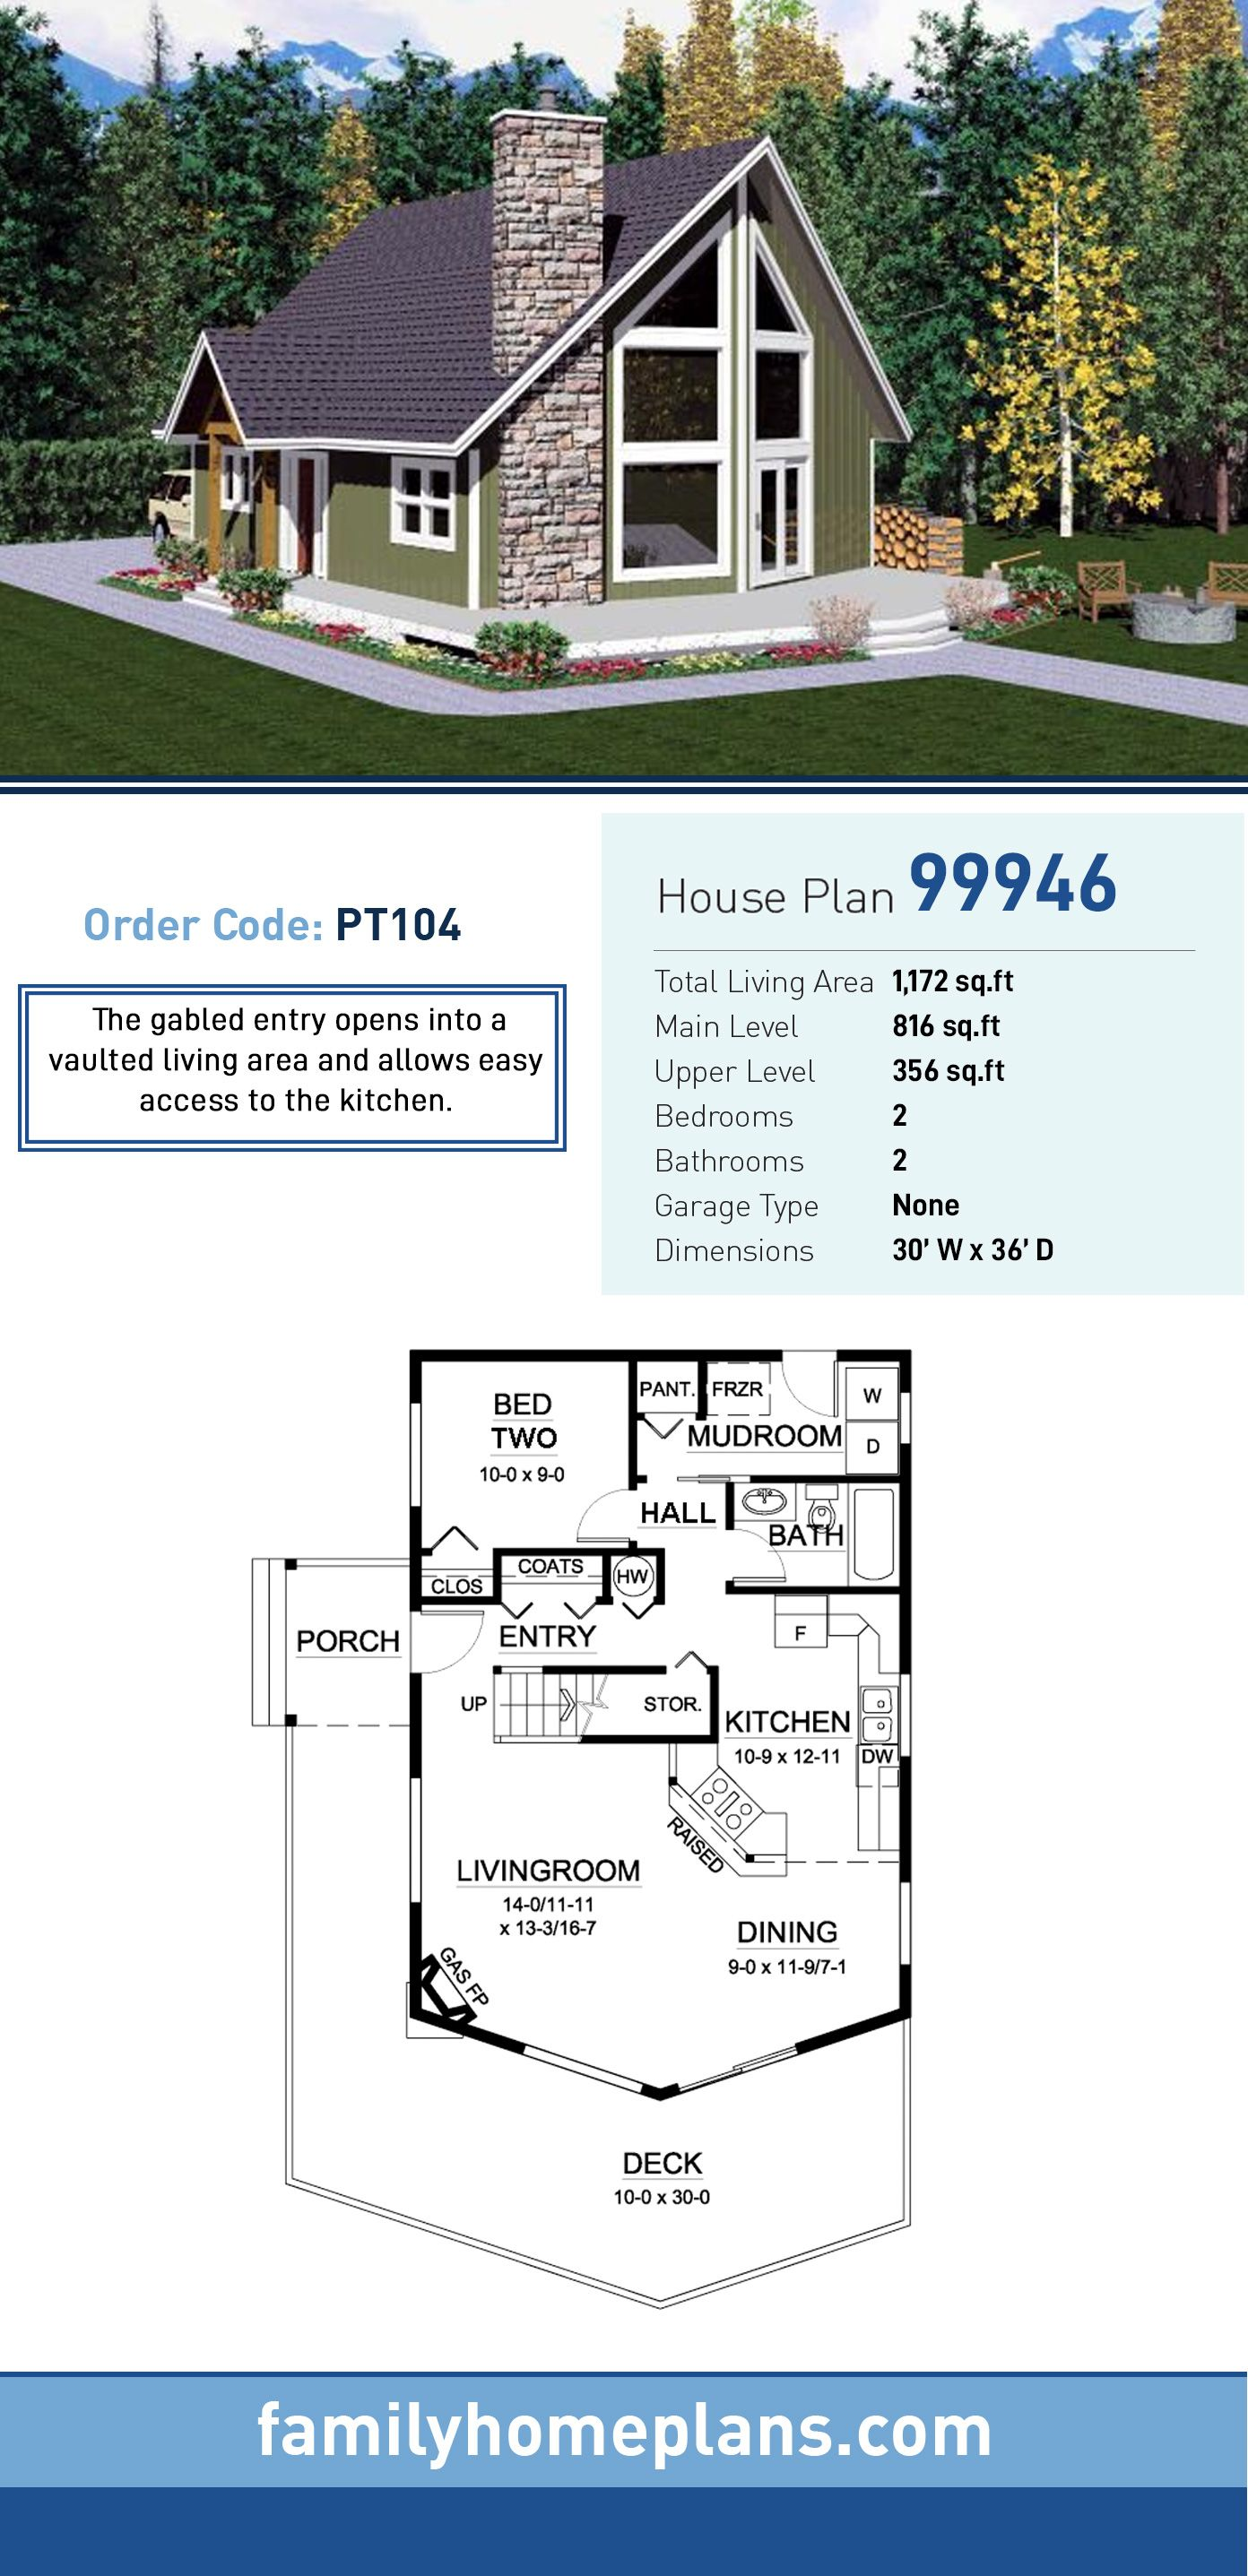 Contemporary Style House Plan 99946 With 2 Bed 2 Bath A Frame House Plans Lake House Plans Family House Plans